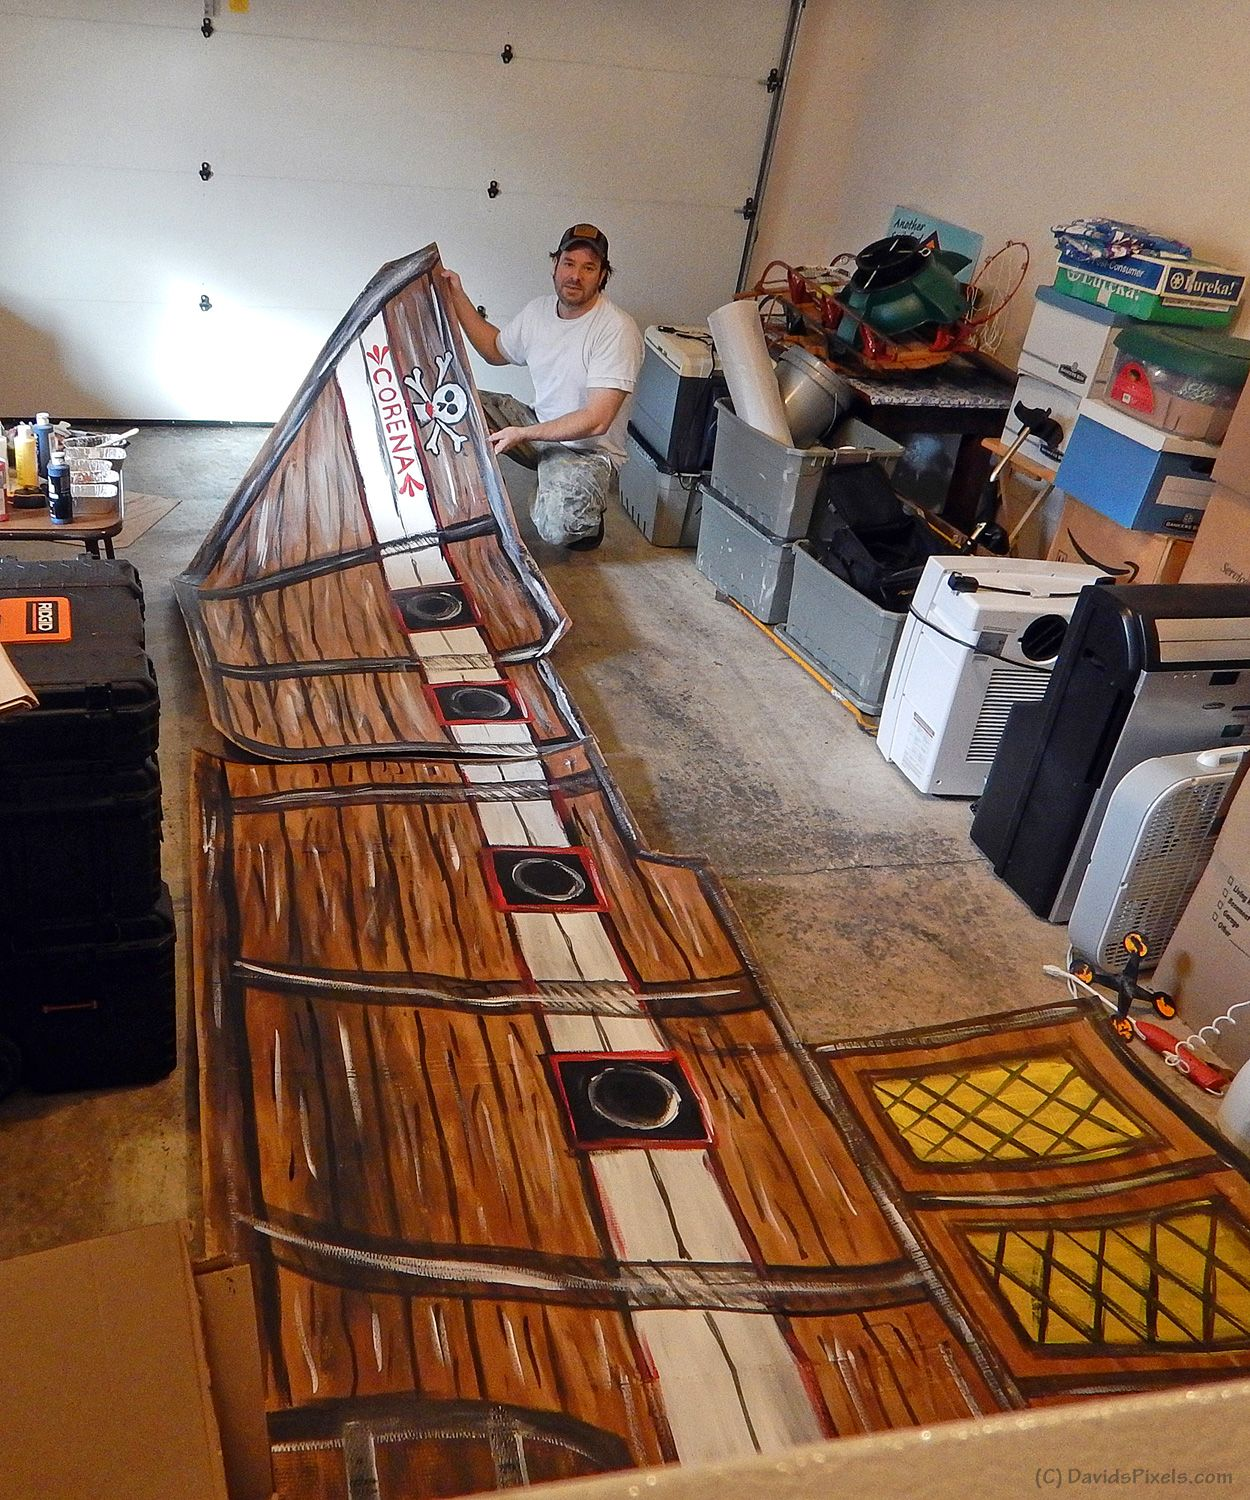 Pirate ship cubicle | Costumes | Pinterest | Cubicle, Pirate ships ...